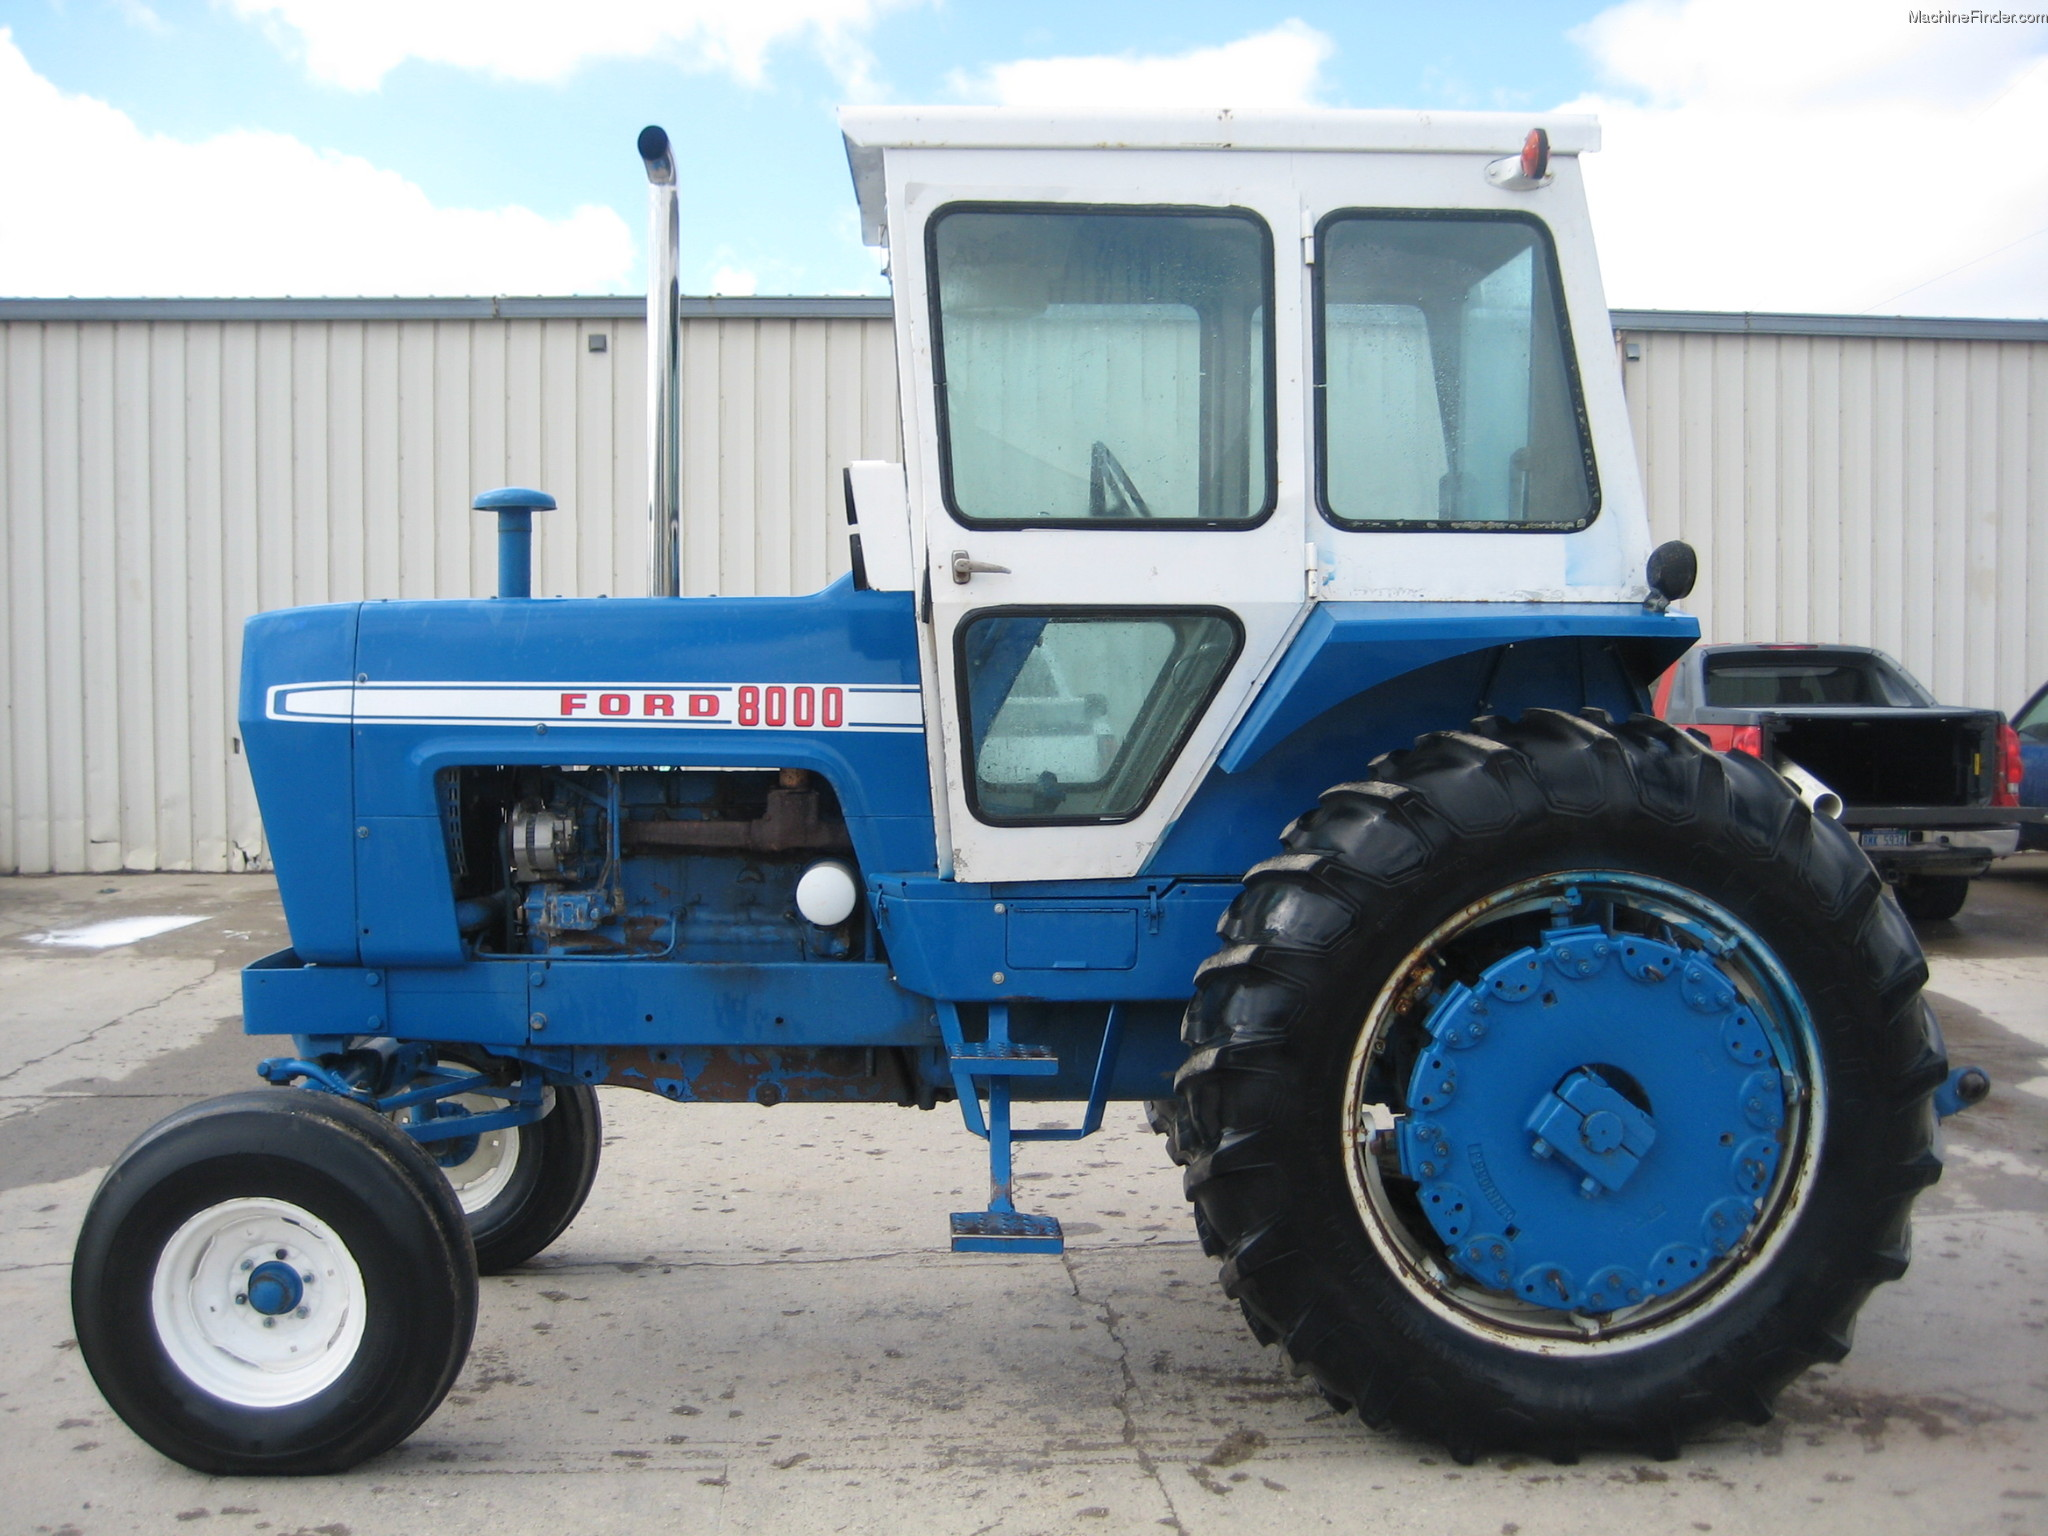 Ford 800 Tractor Information : Ford data